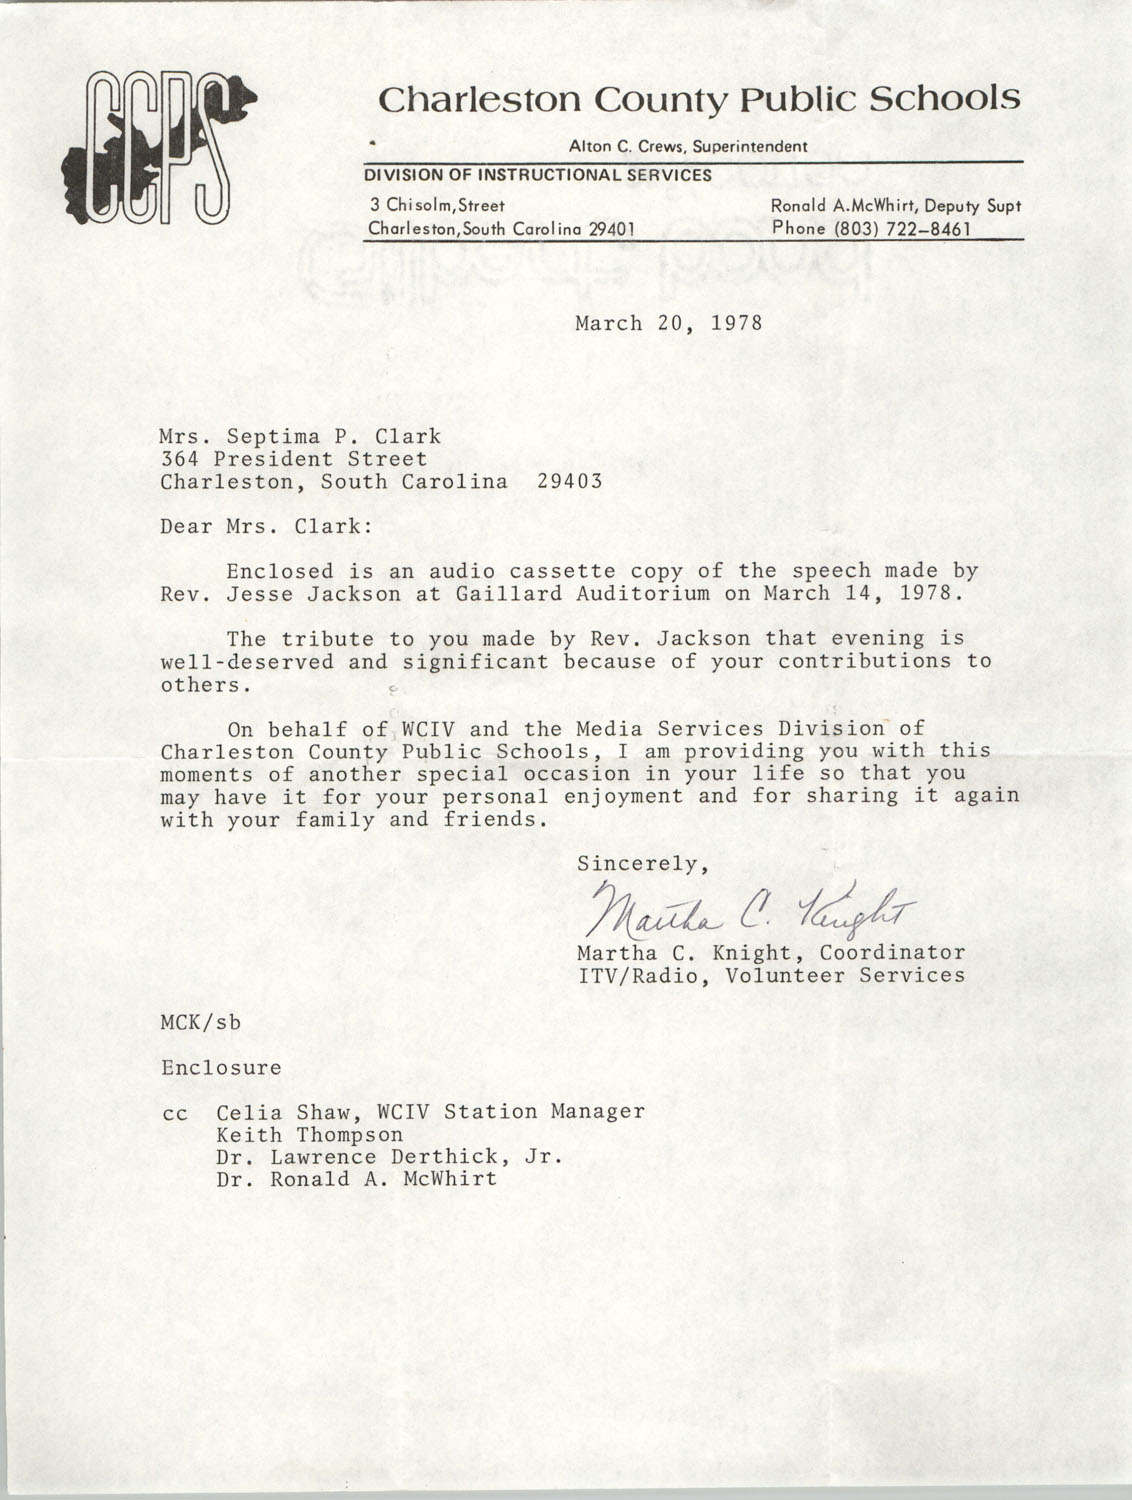 Letter from Martha C. Knight to Septima P. Clark, March 20, 1978